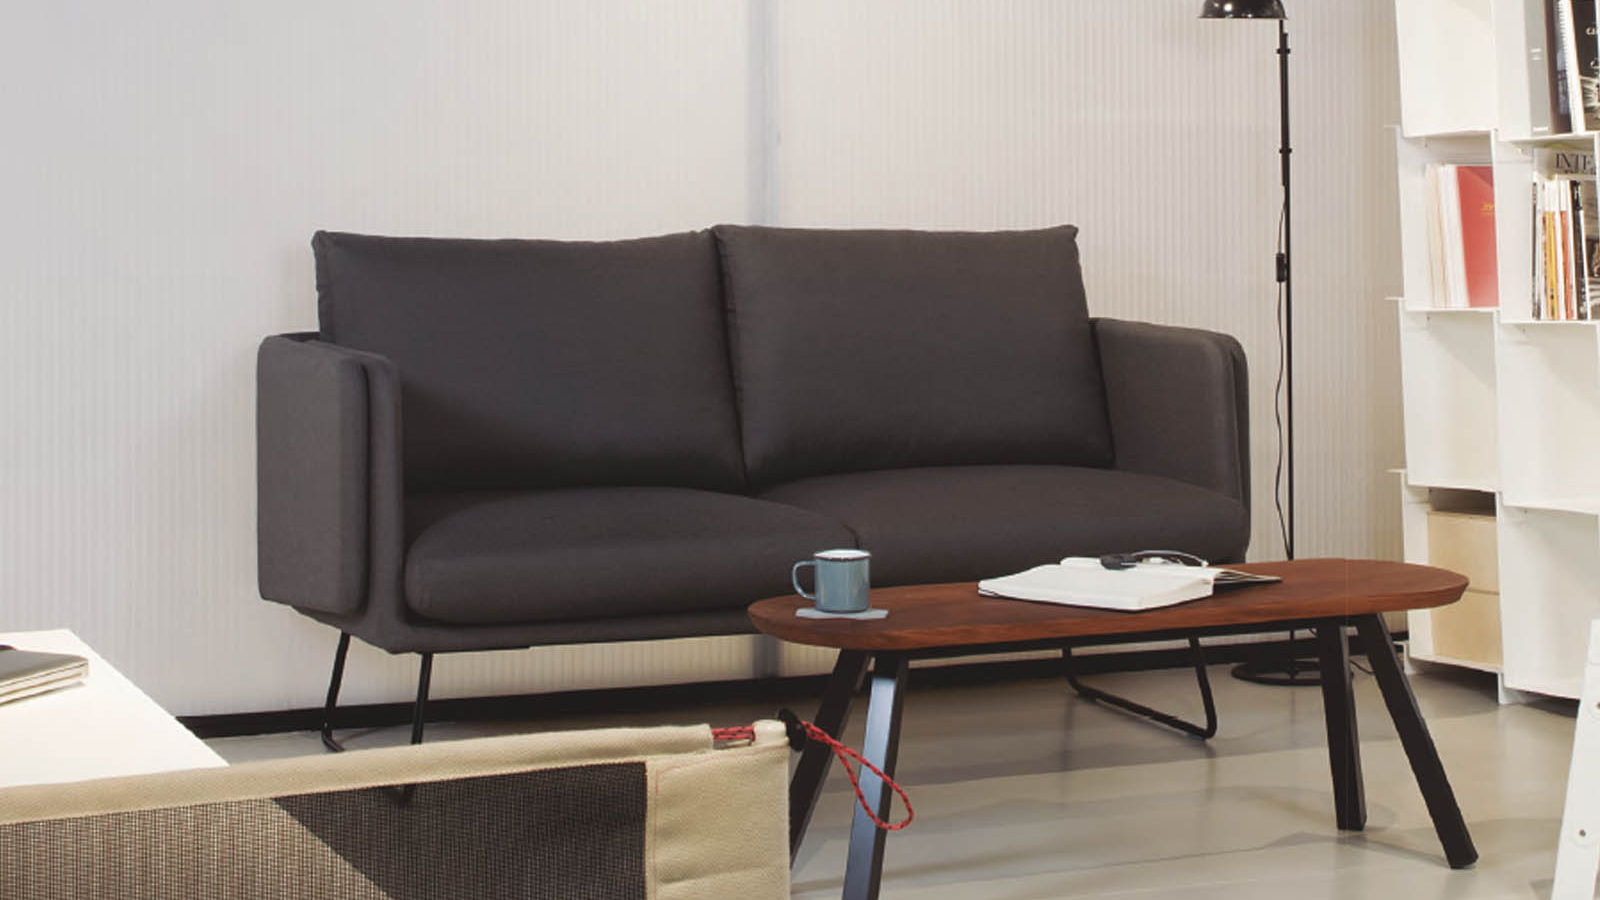 RS Barcellona Spongy sofa